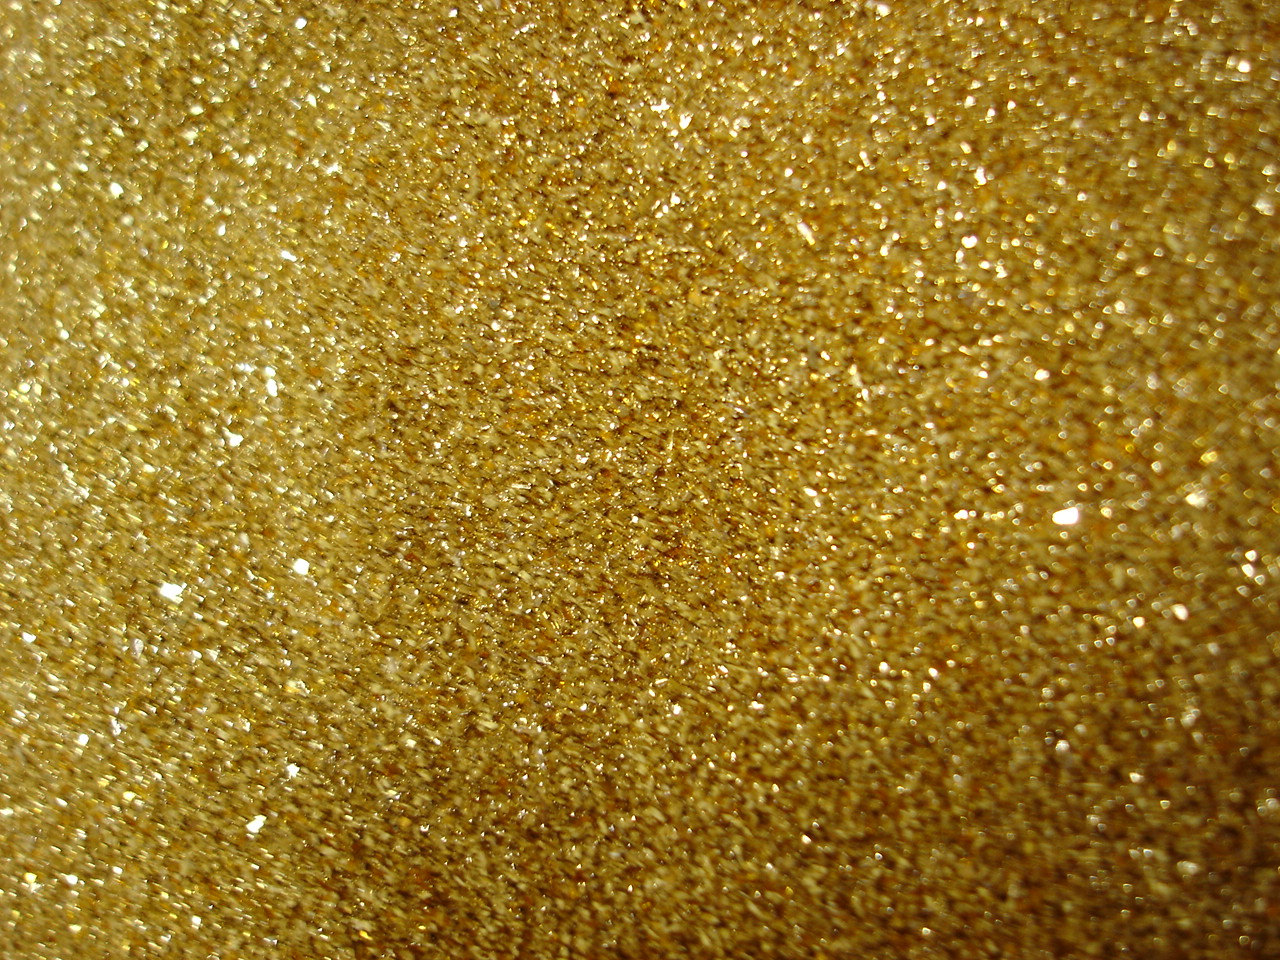 Gold Glitter 1072 :: Golden Glitter Wallpaper: digitalresult.com/view/8-golden-glitter-wallpaper